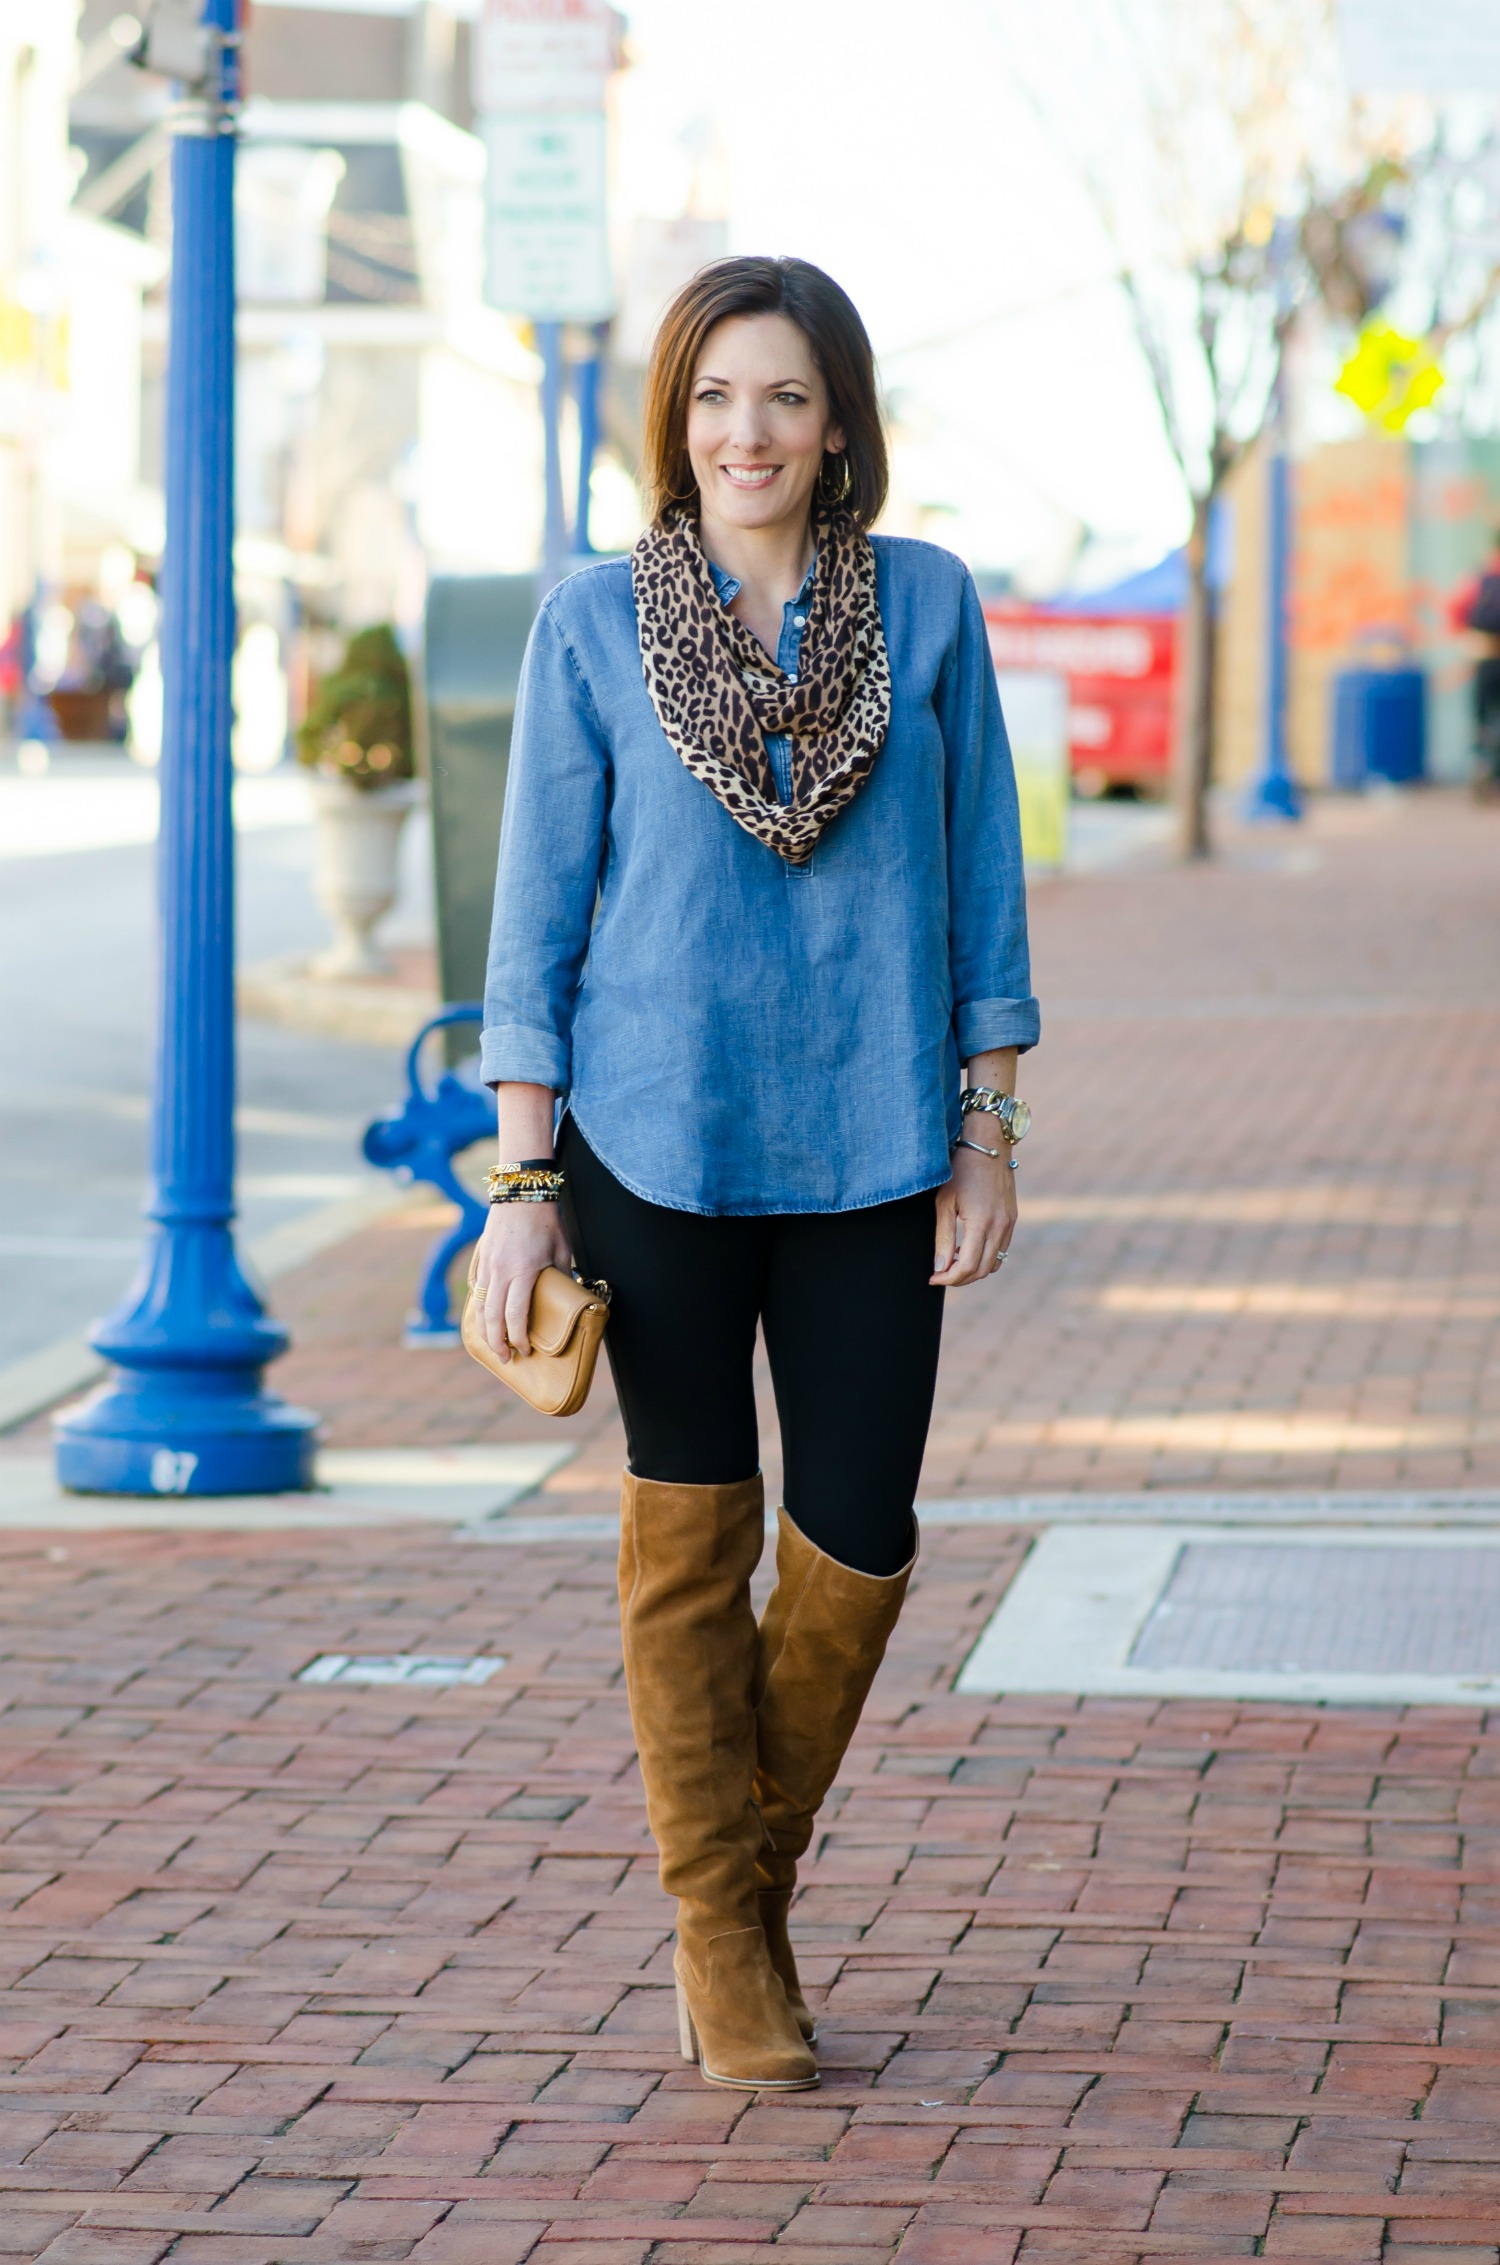 69e4469ce735e Thanksgiving Outfit Idea: Chambray Shirt and Leopard Scarf with Leggings  and brown Over the Knee